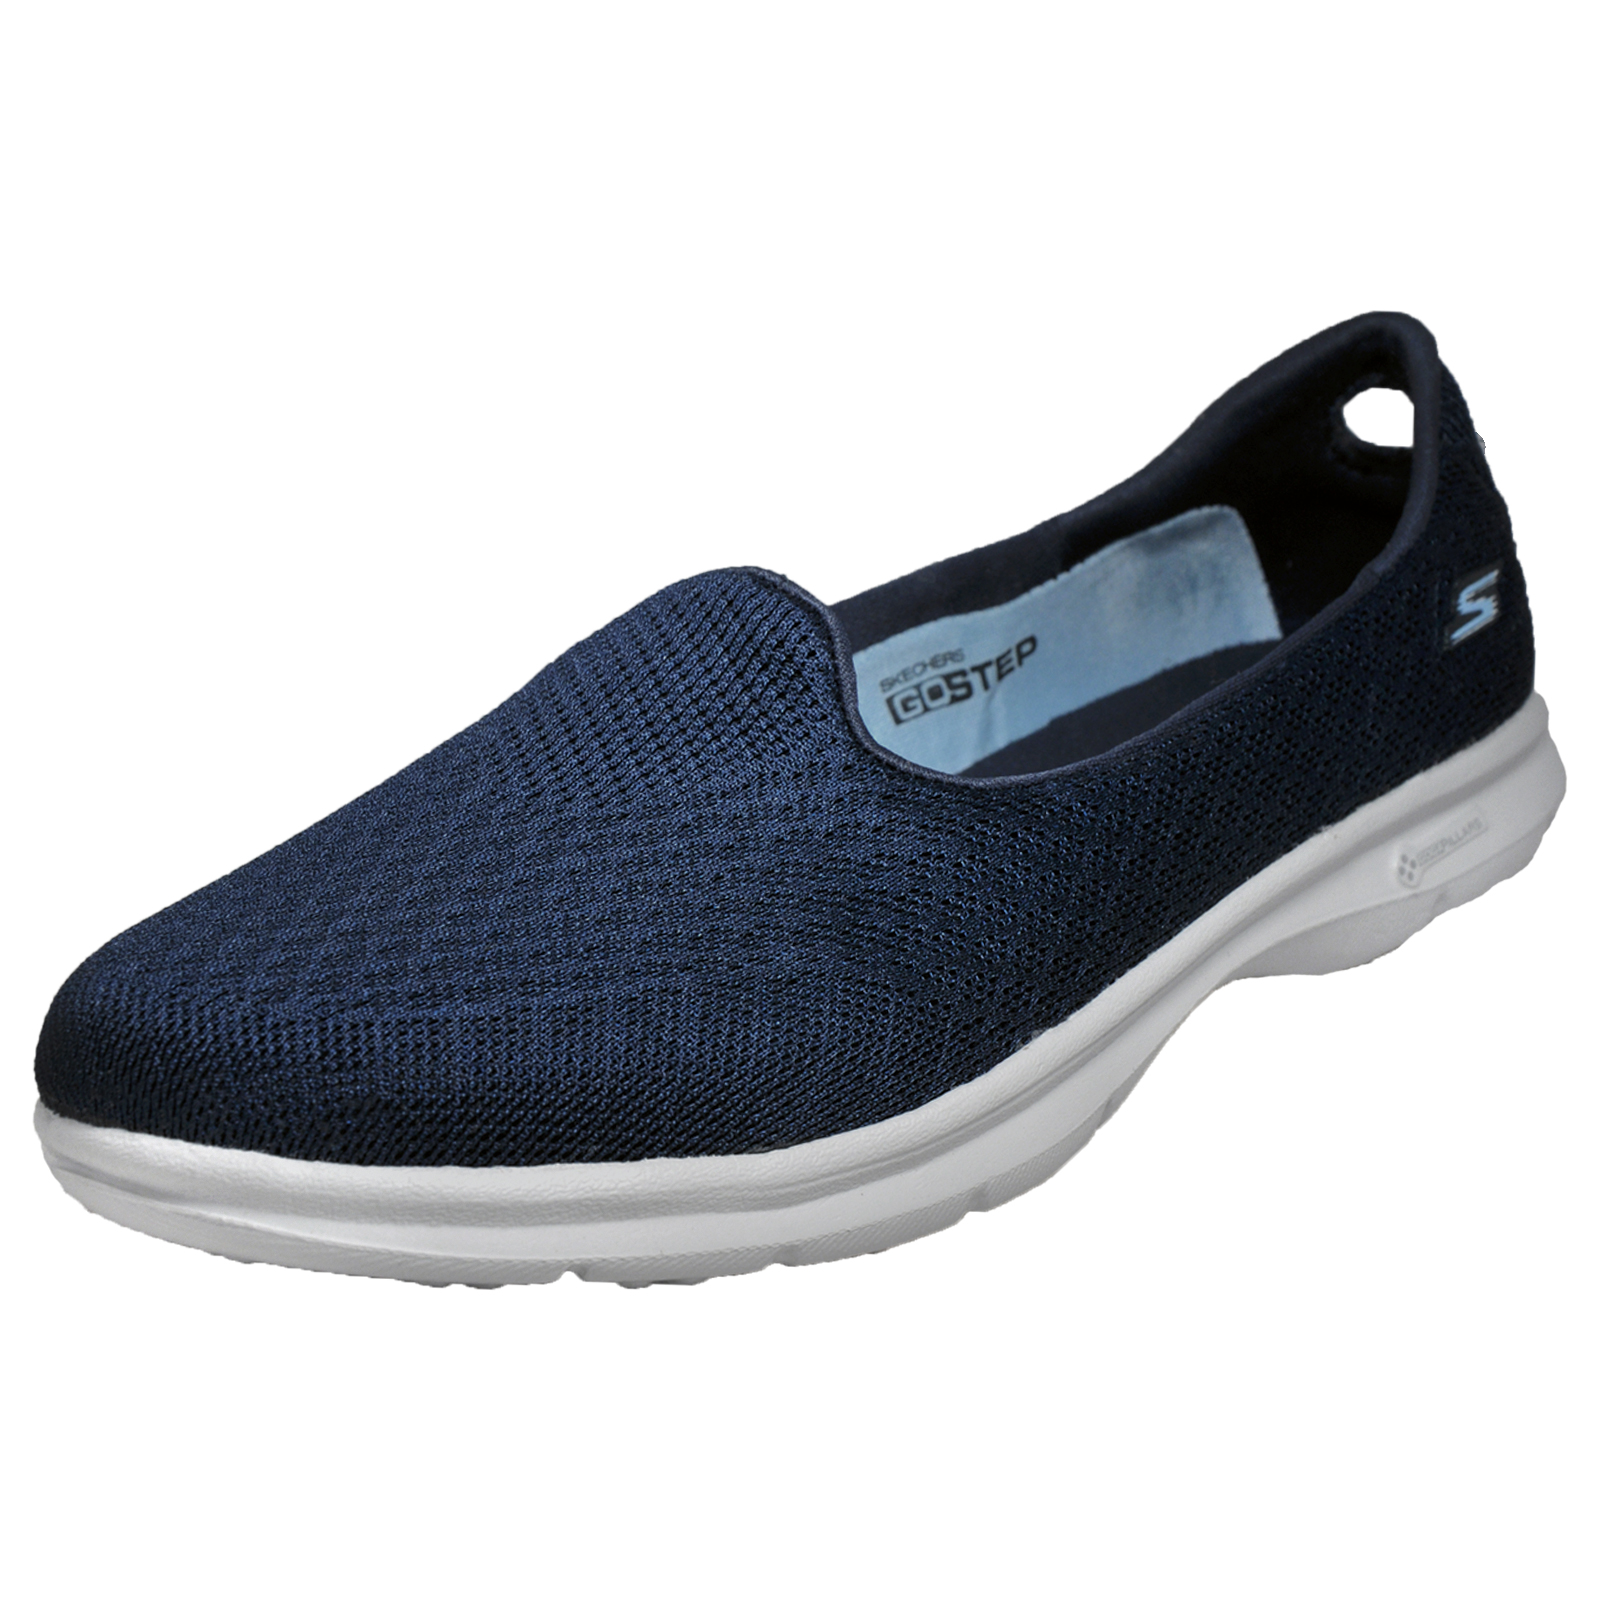 NEW Skechers Gogamat Athletic Comfort Sneakers Women's Shoes Size 8.5 Eur 38.5